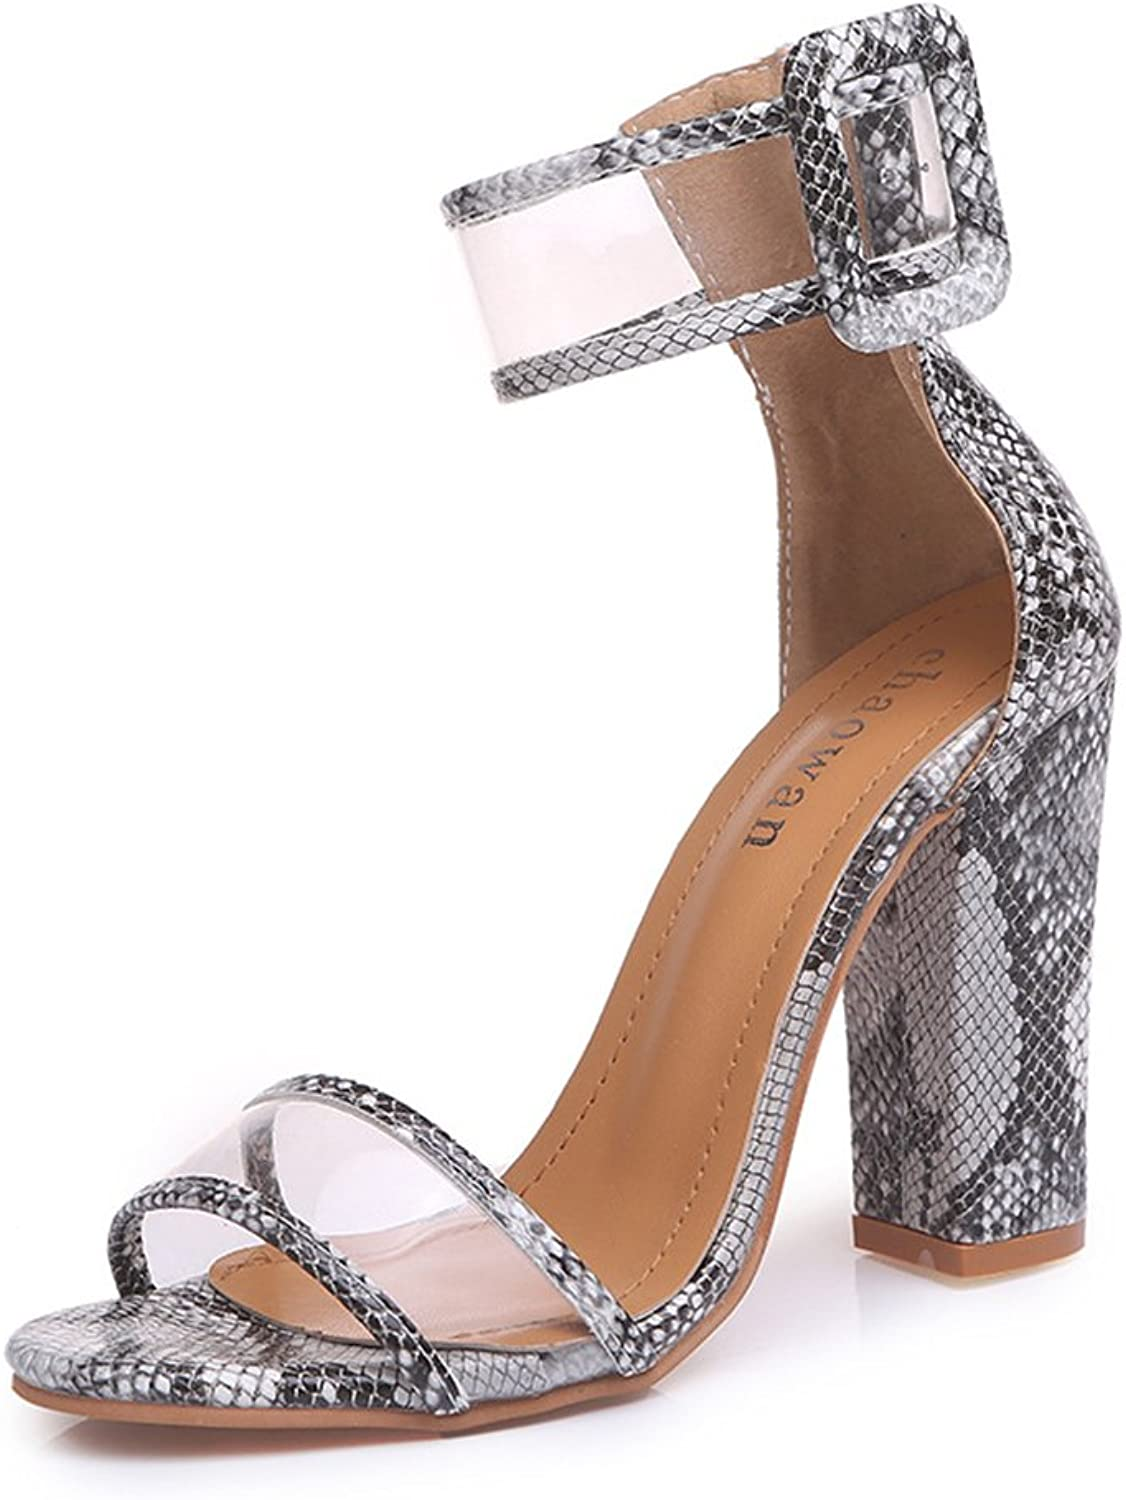 Open Toe Covered Chunky Block Heel Sandals - Dressy Vegan Single Sole Ankle Strap Sandals